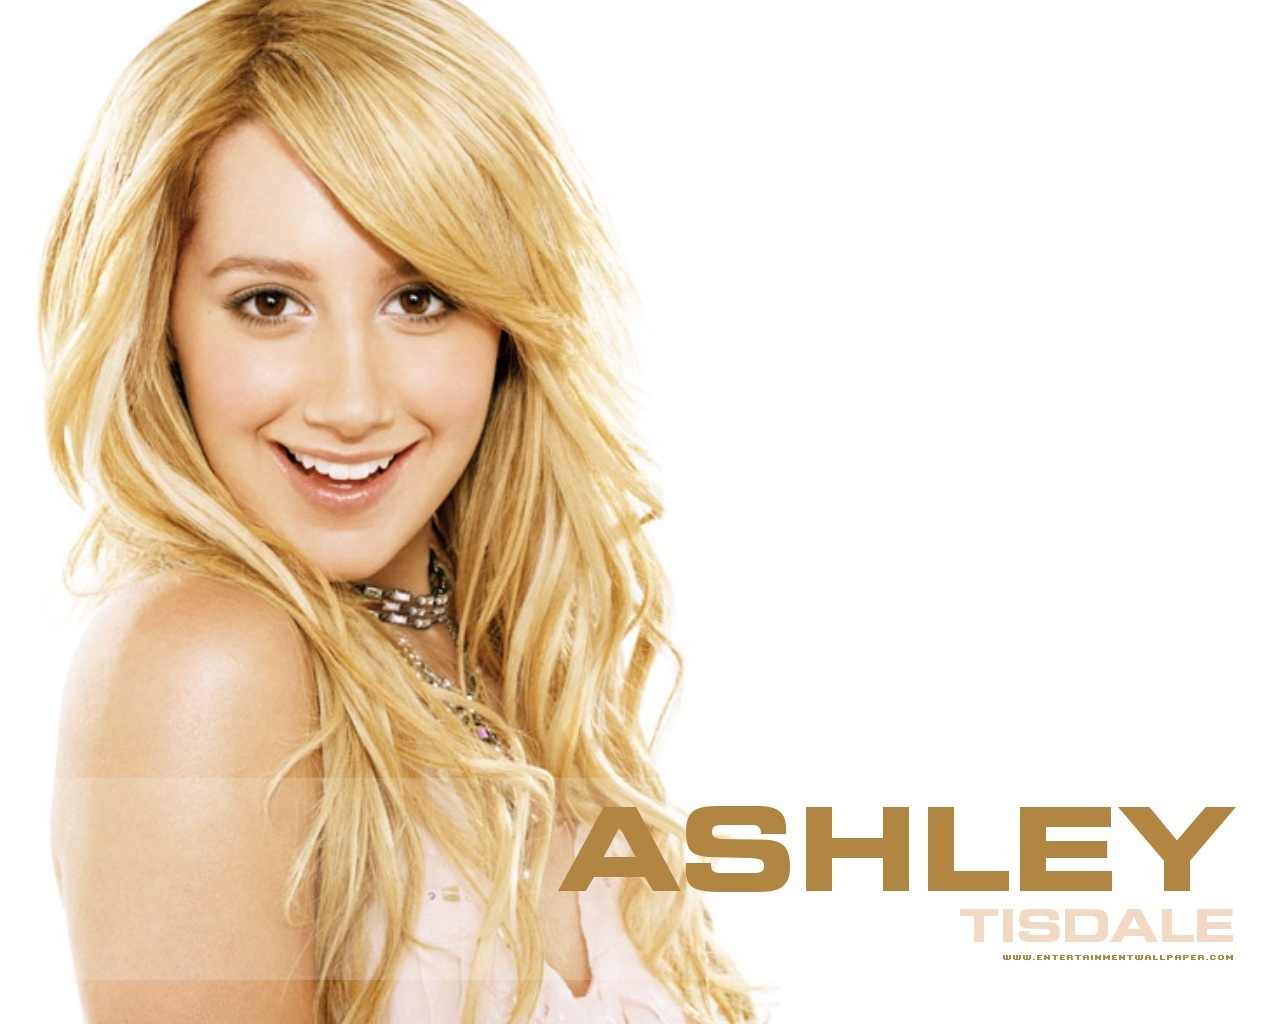 ashley tisdale 4 wallpapers - photo #26